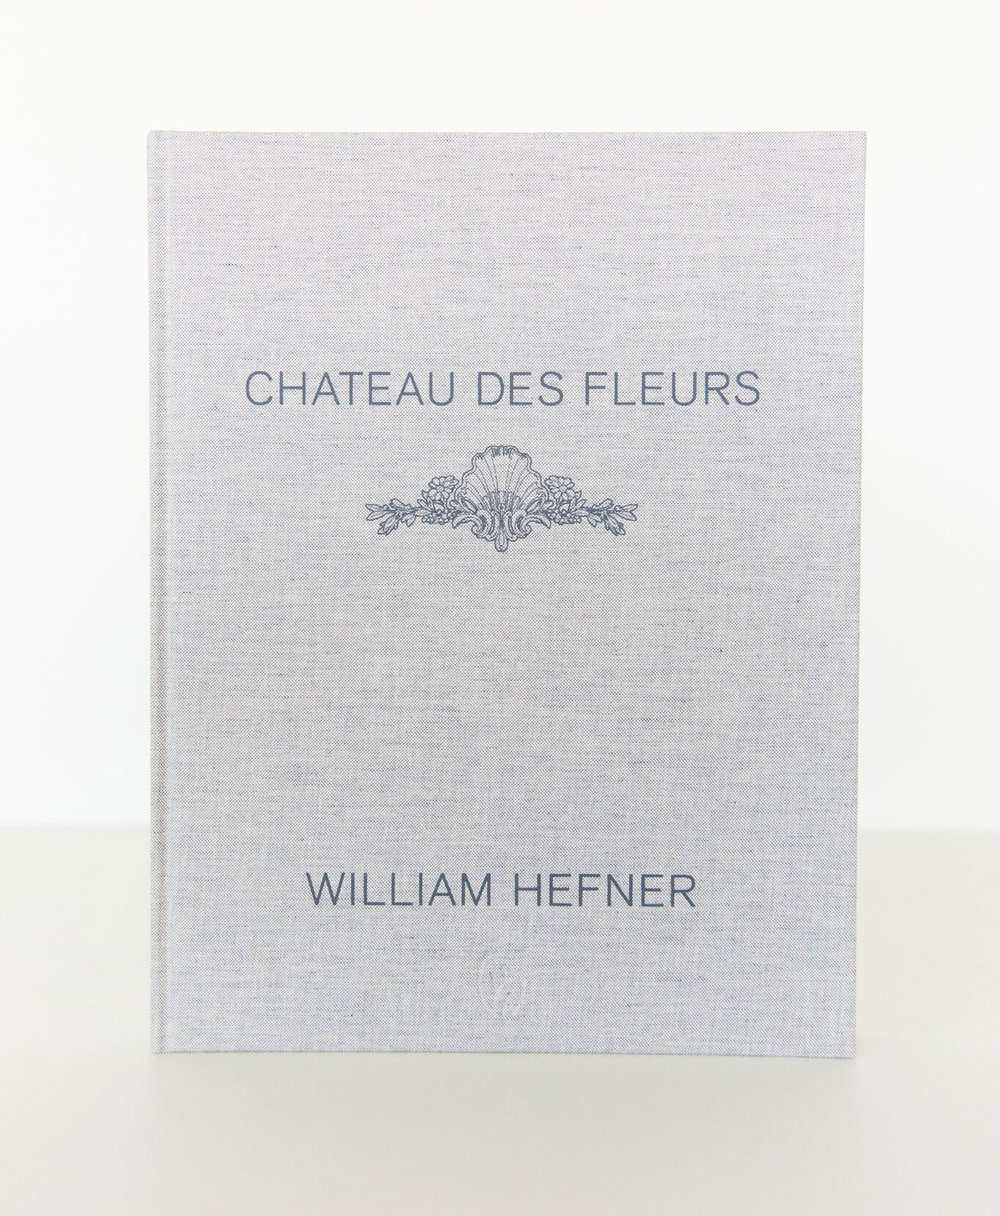 Chateau Des Fleurs - Decorative Coffee Table Book | mcgeeandco.com